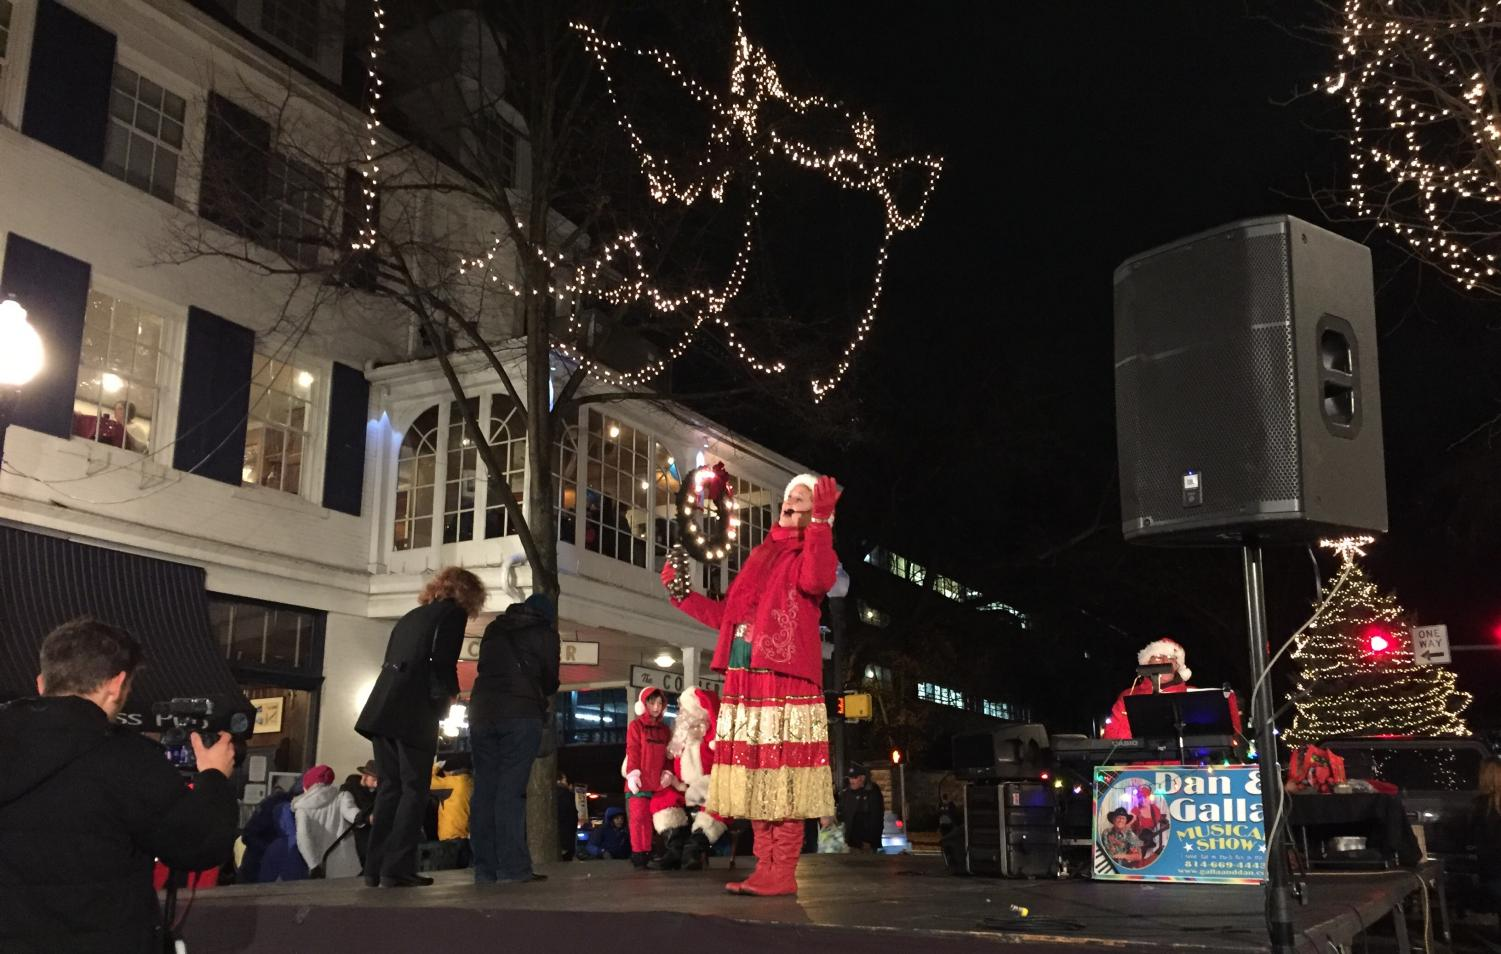 Galla of the Dan and Galla Musical show performs on the stage during the annual Christmas tree lighting.